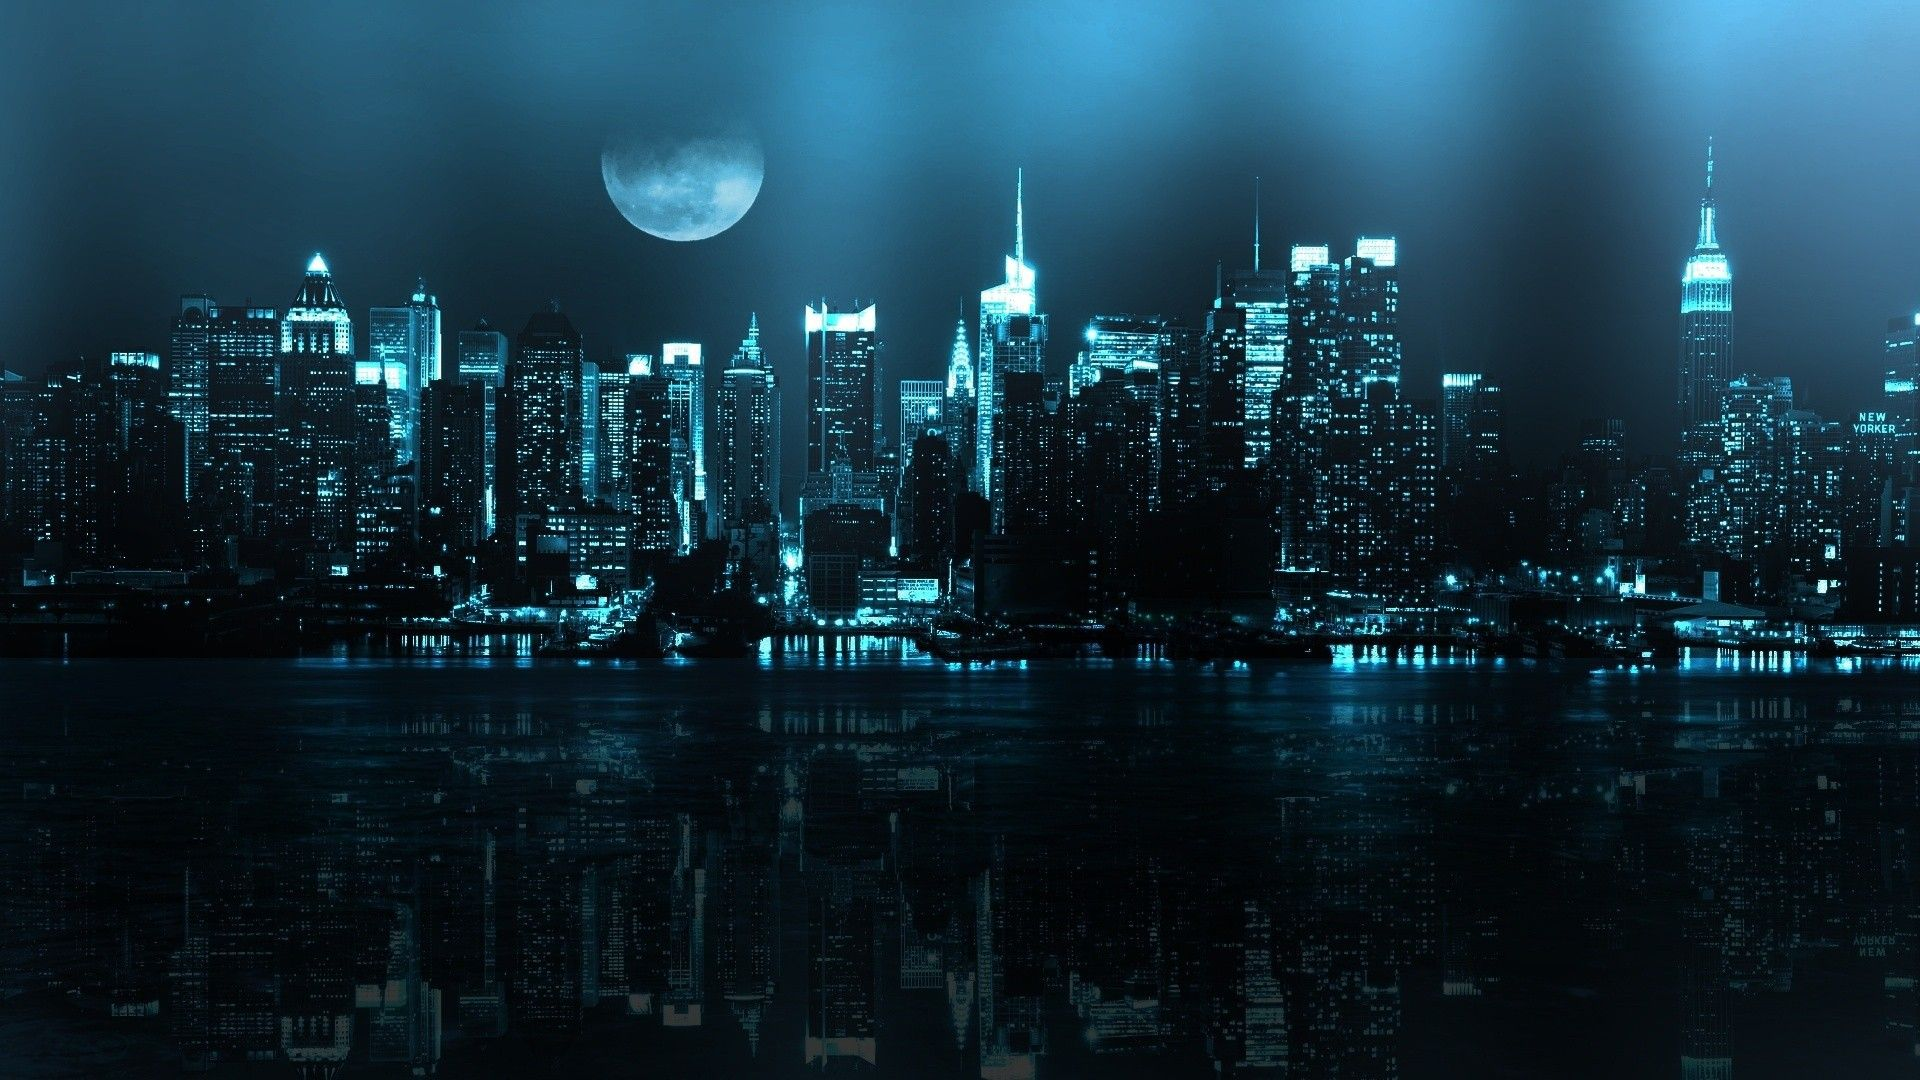 Night City Wallpapers High Resolution For Desktop 1920x1080 Px